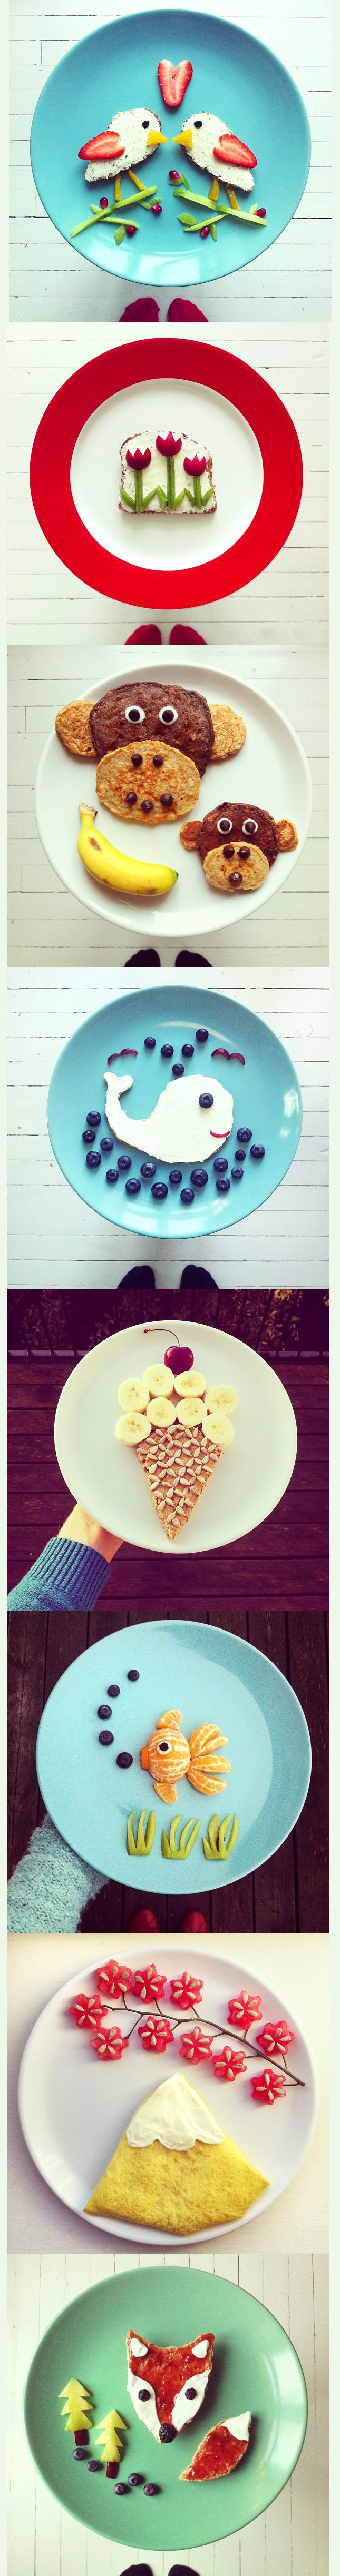 Cheerful Food Art | techlovedesign.com {perfect for kids to make them eat there food}